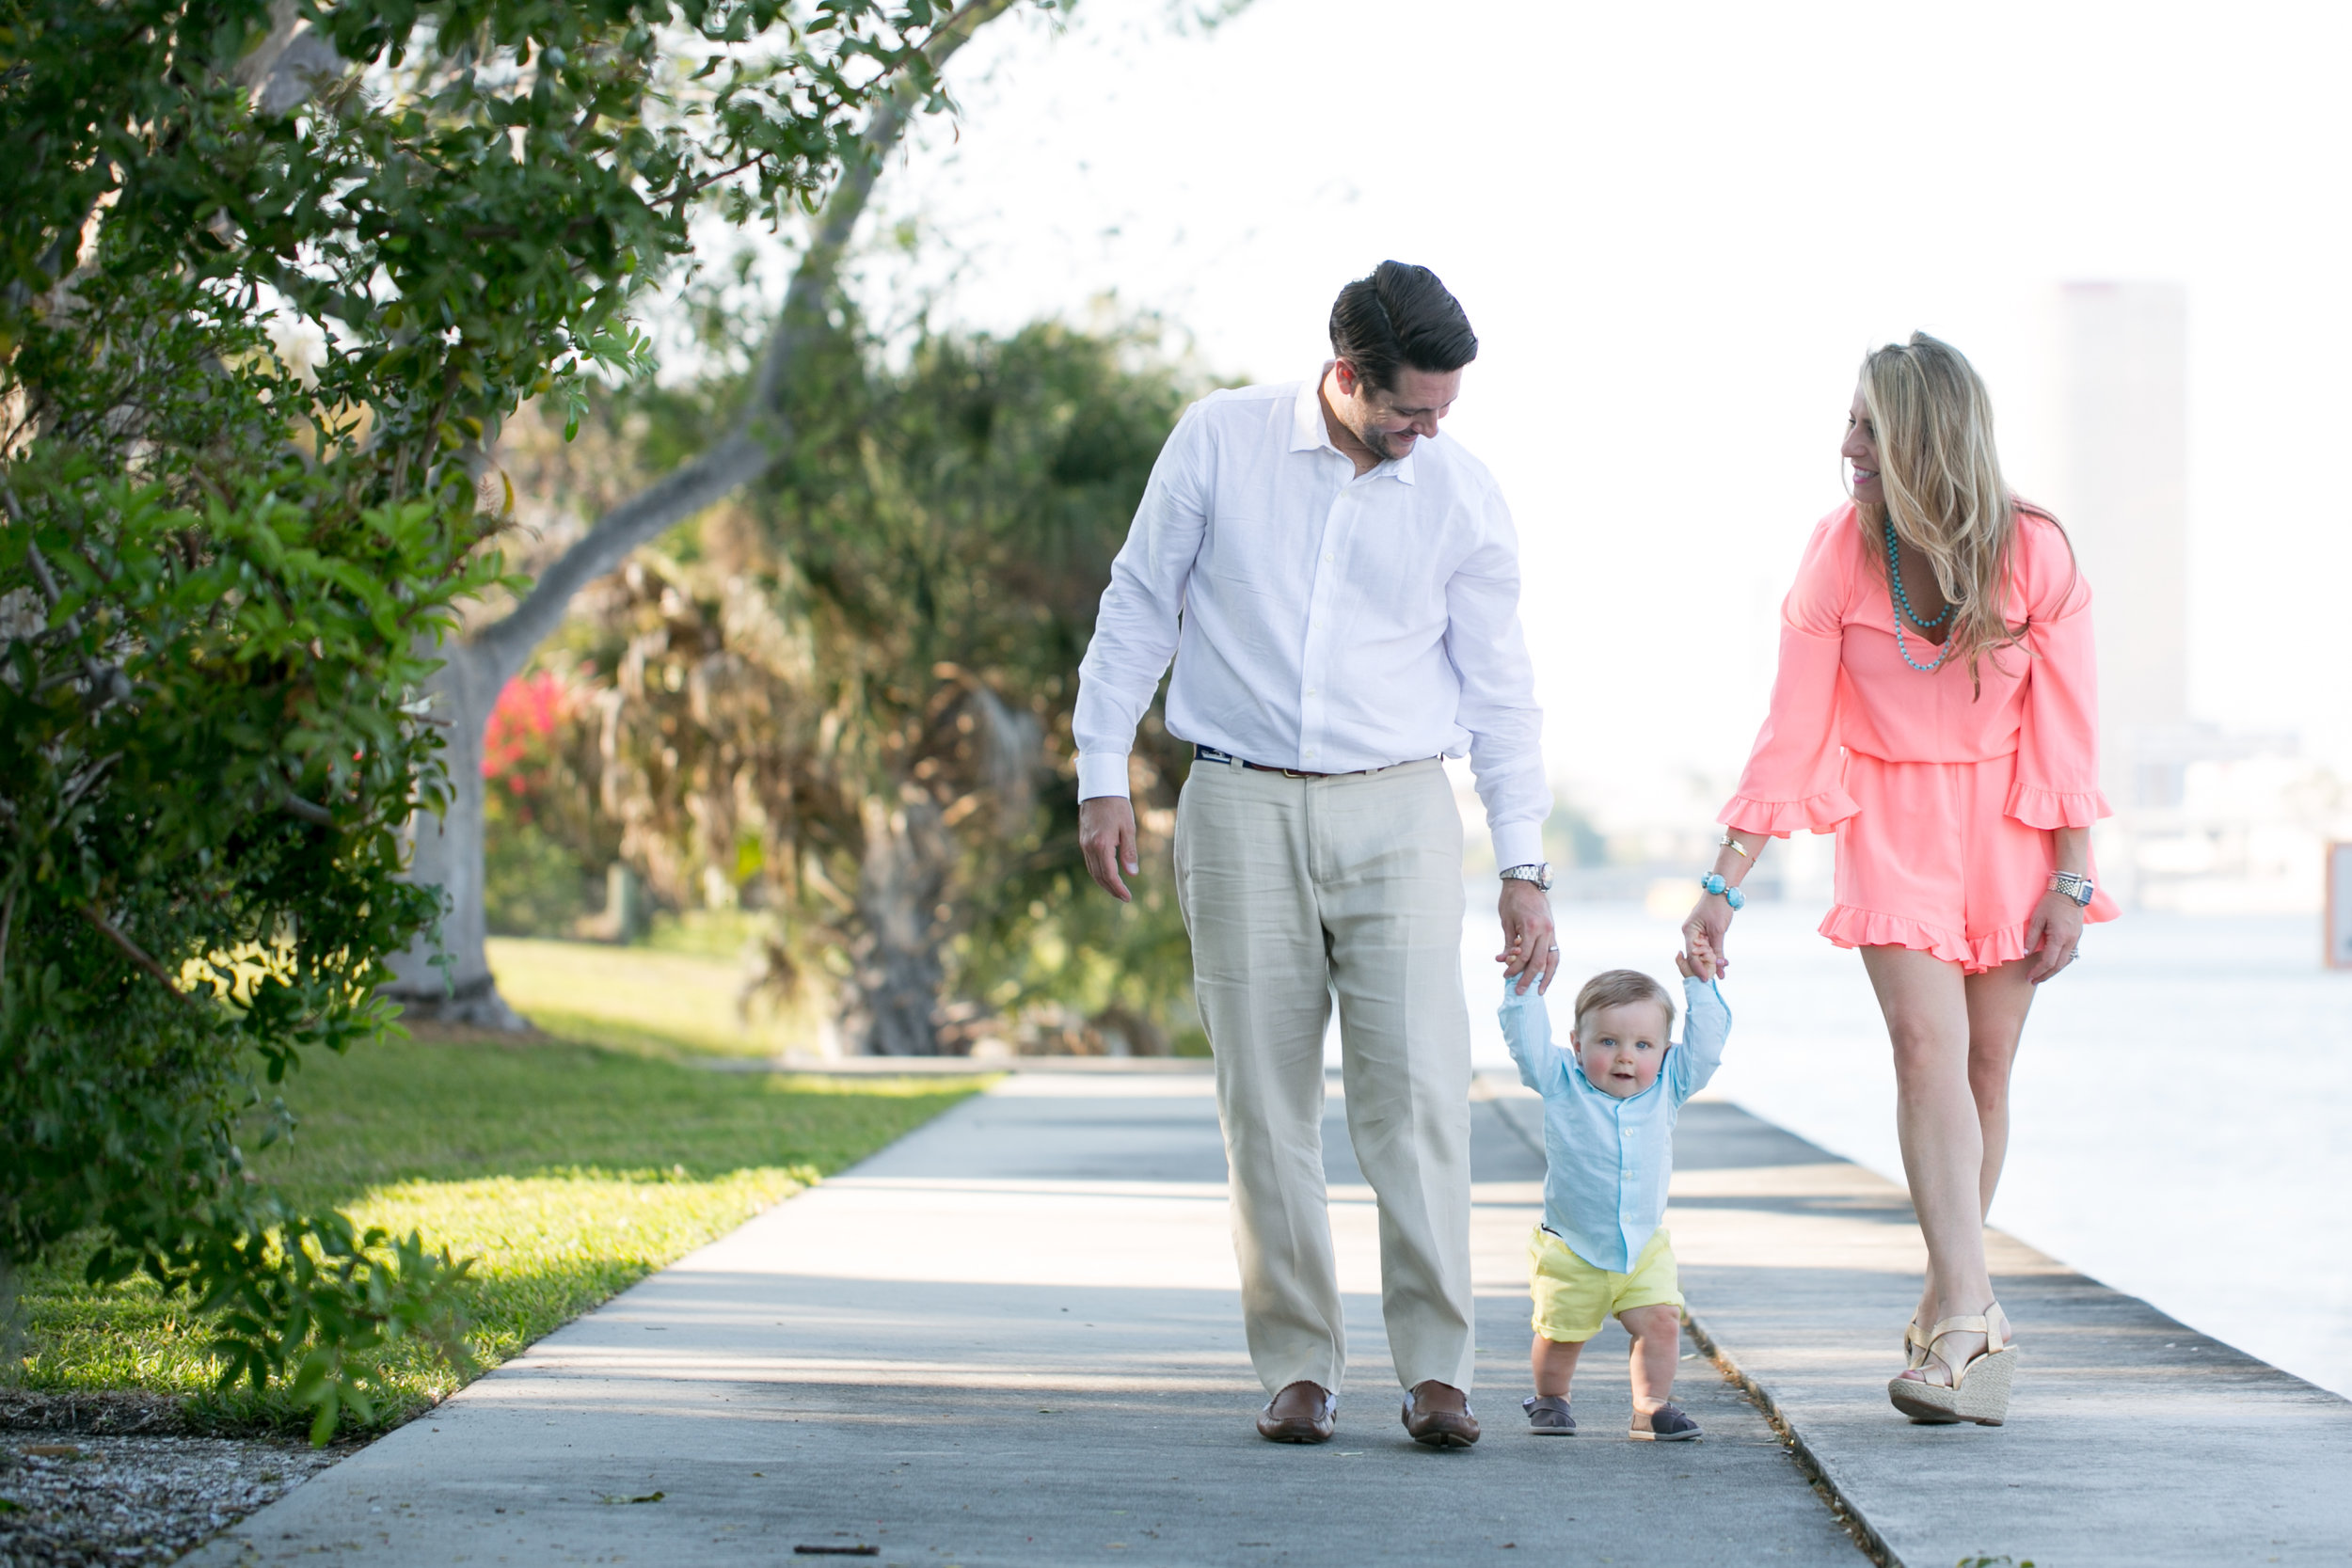 3_23_17 Tag 1 Year Old Tampa Portrait Session 02.jpg